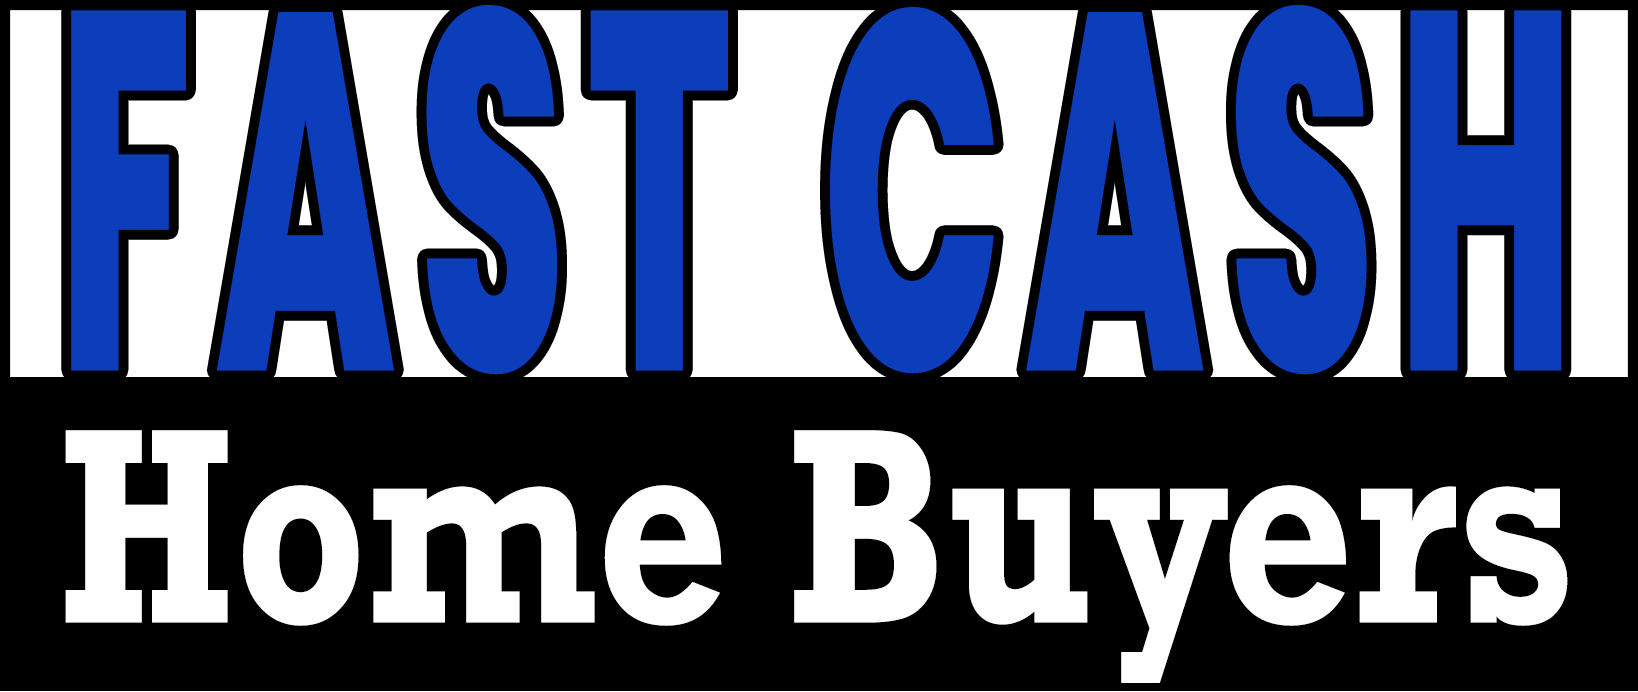 Fast Cash Home Buyers logo